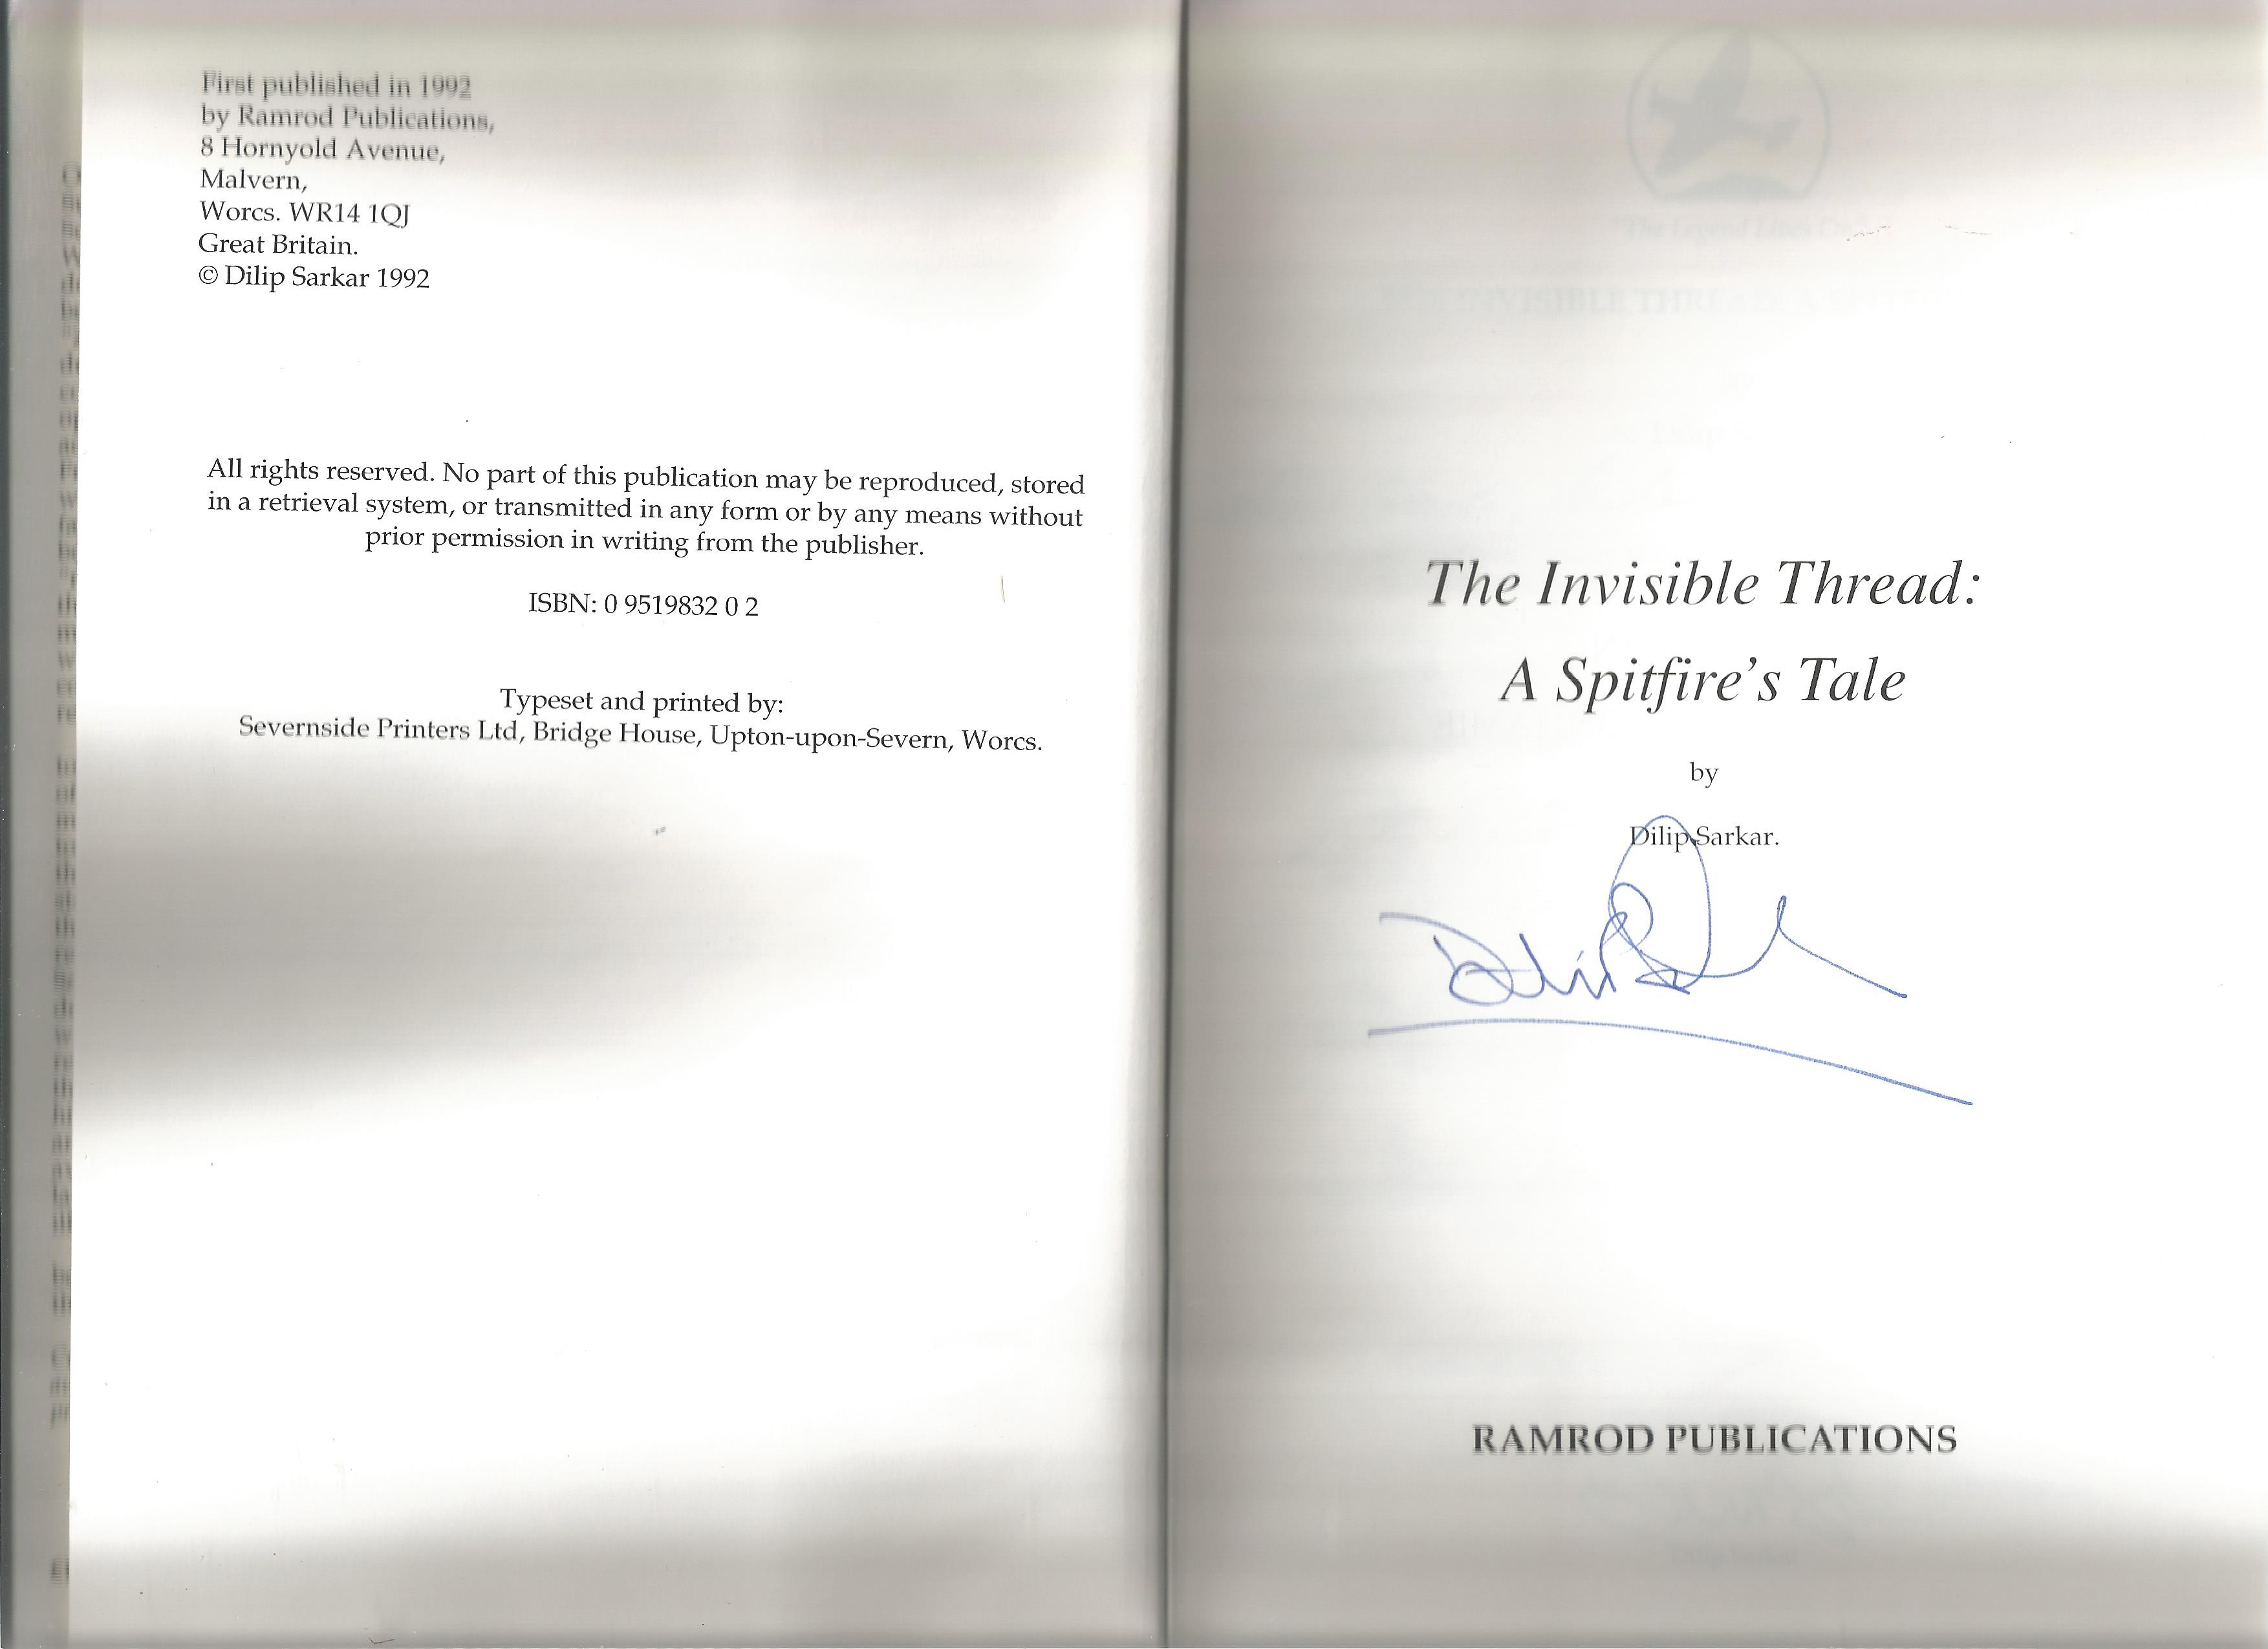 Dilip Sarkar. The Invisible Thread: A Spitfires Tale. A WW2 First edition multi signed hardback - Image 2 of 2